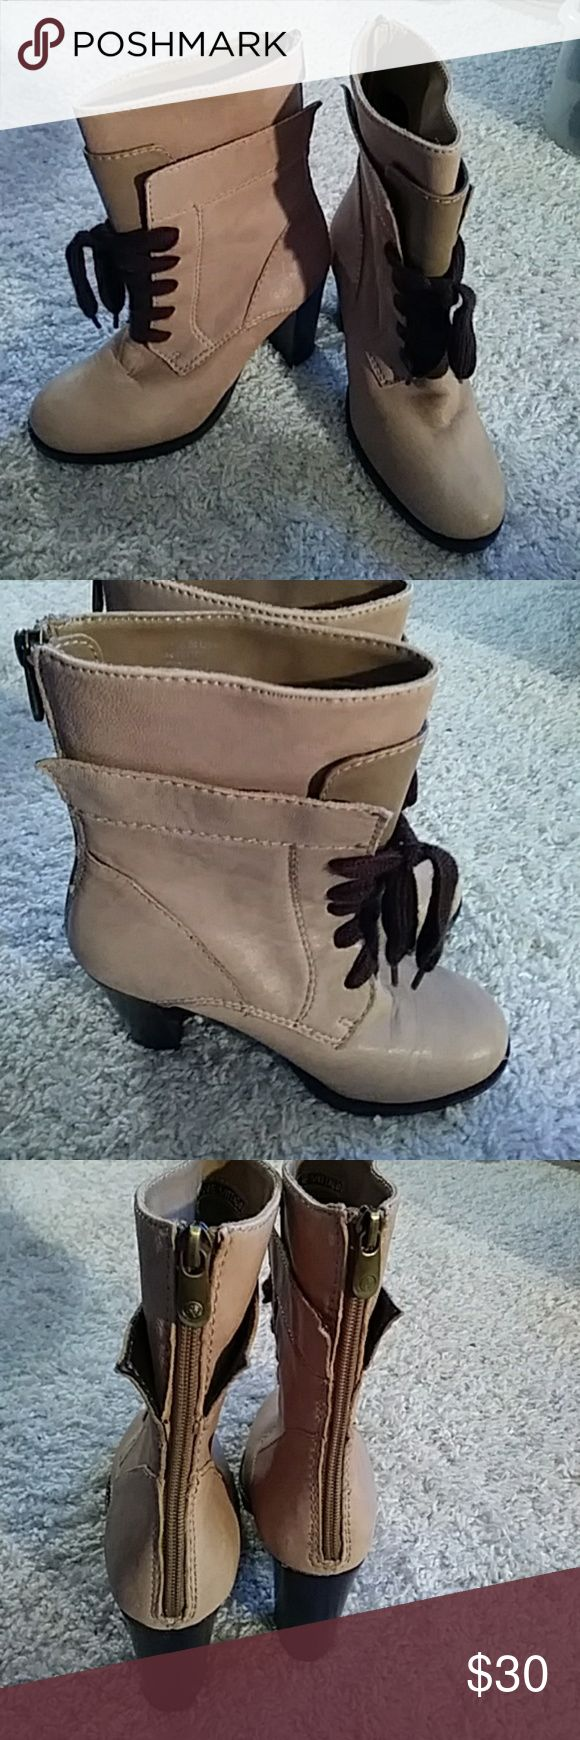 Adrienne Vittadini Adrienne Vittadini Bette Bootie excellant condition Shoes Ankle Boots & Booties